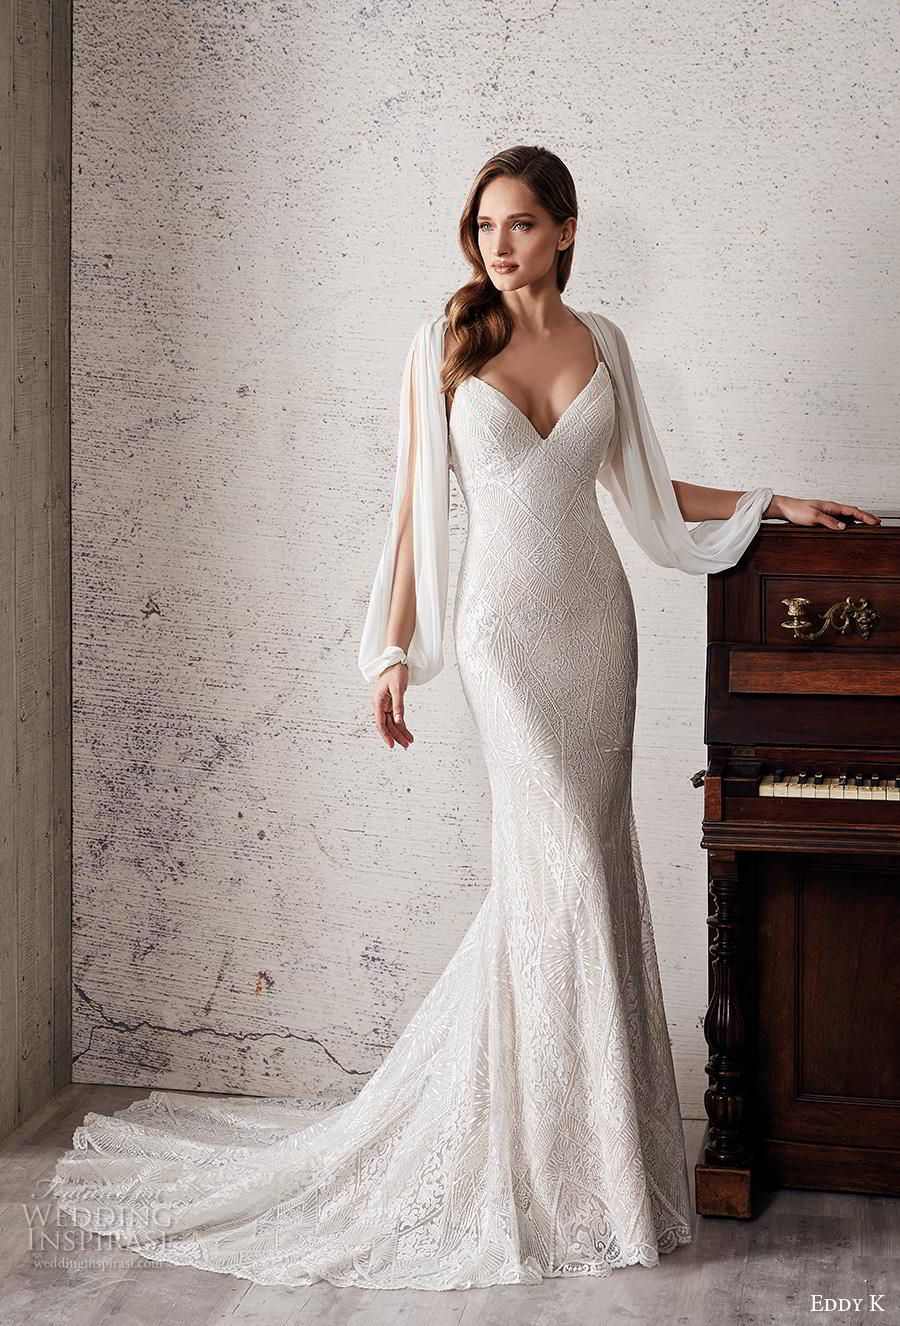 Eddy k couture 2019 wedding dresses pinterest eddy k 2019 couture bridal long hanging sleeves spaghetti strap diamond neck full embellishment glitzy elegant junglespirit Images